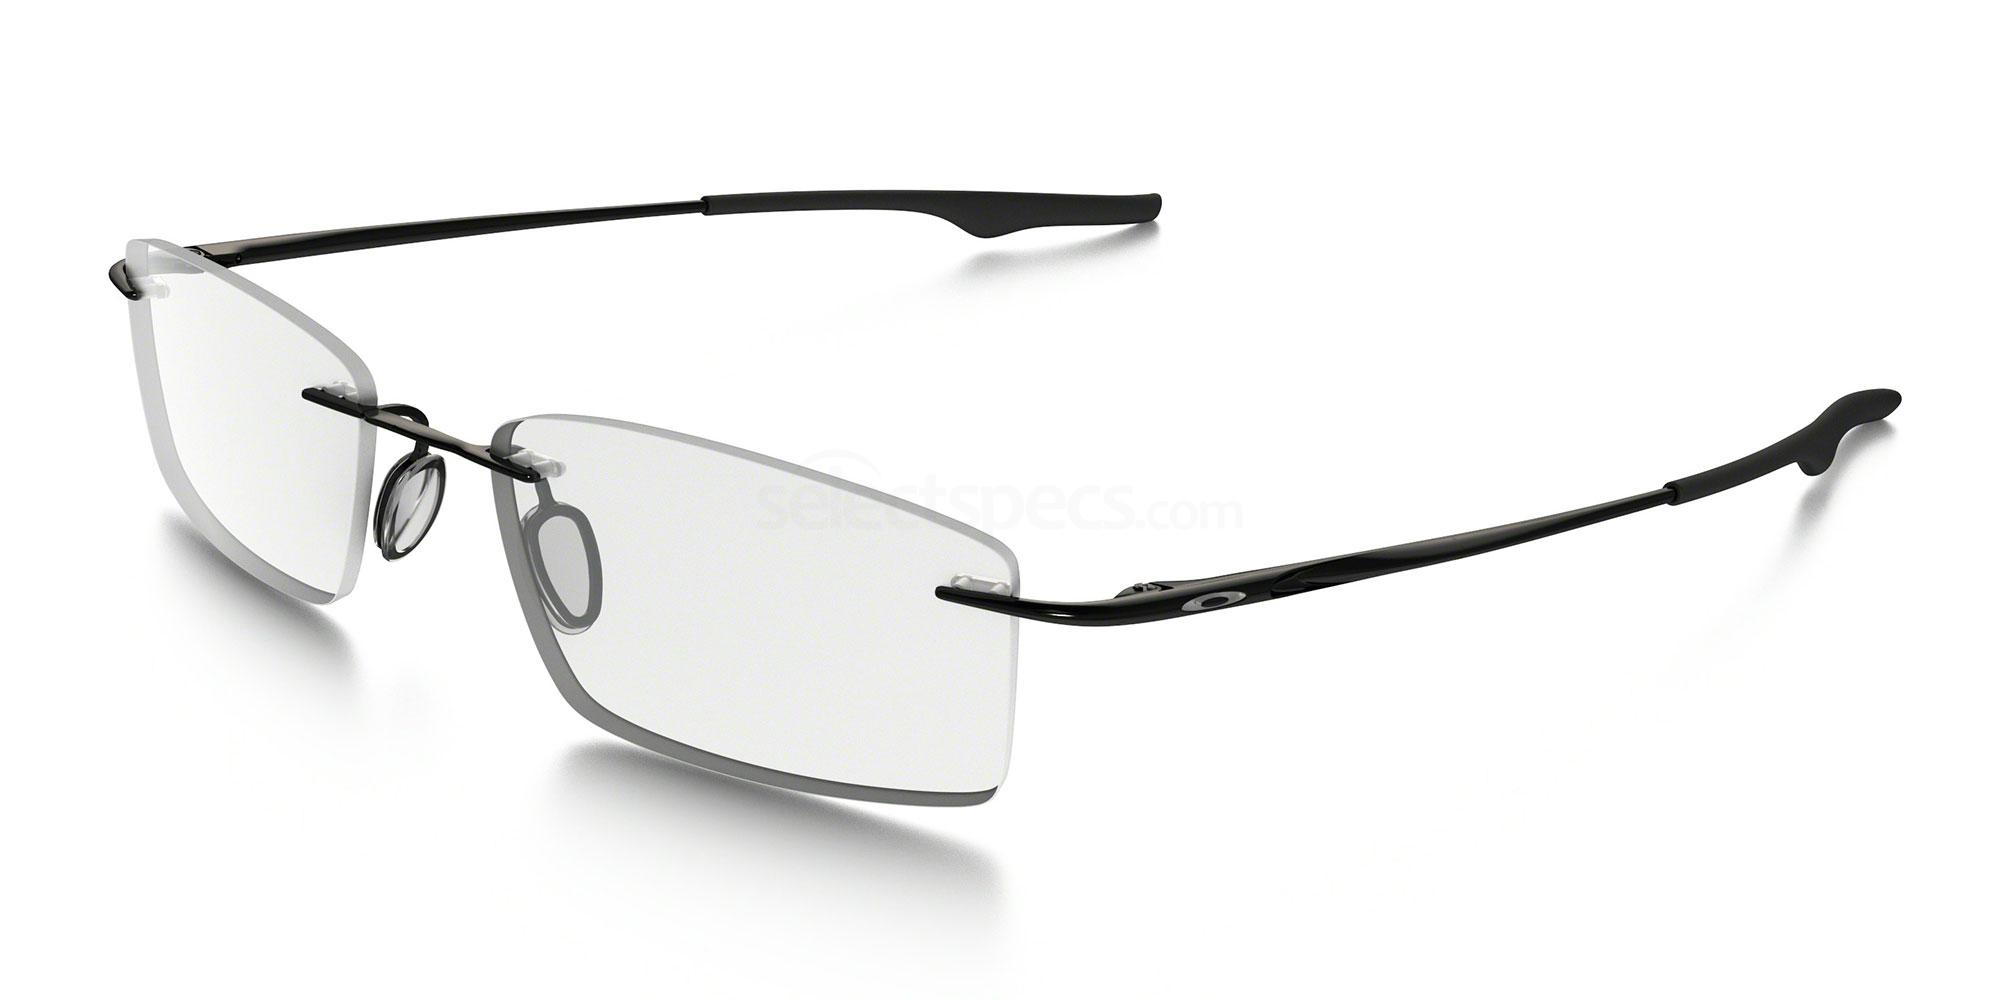 Oakley-OX3122-KEEL-rimless-glasses